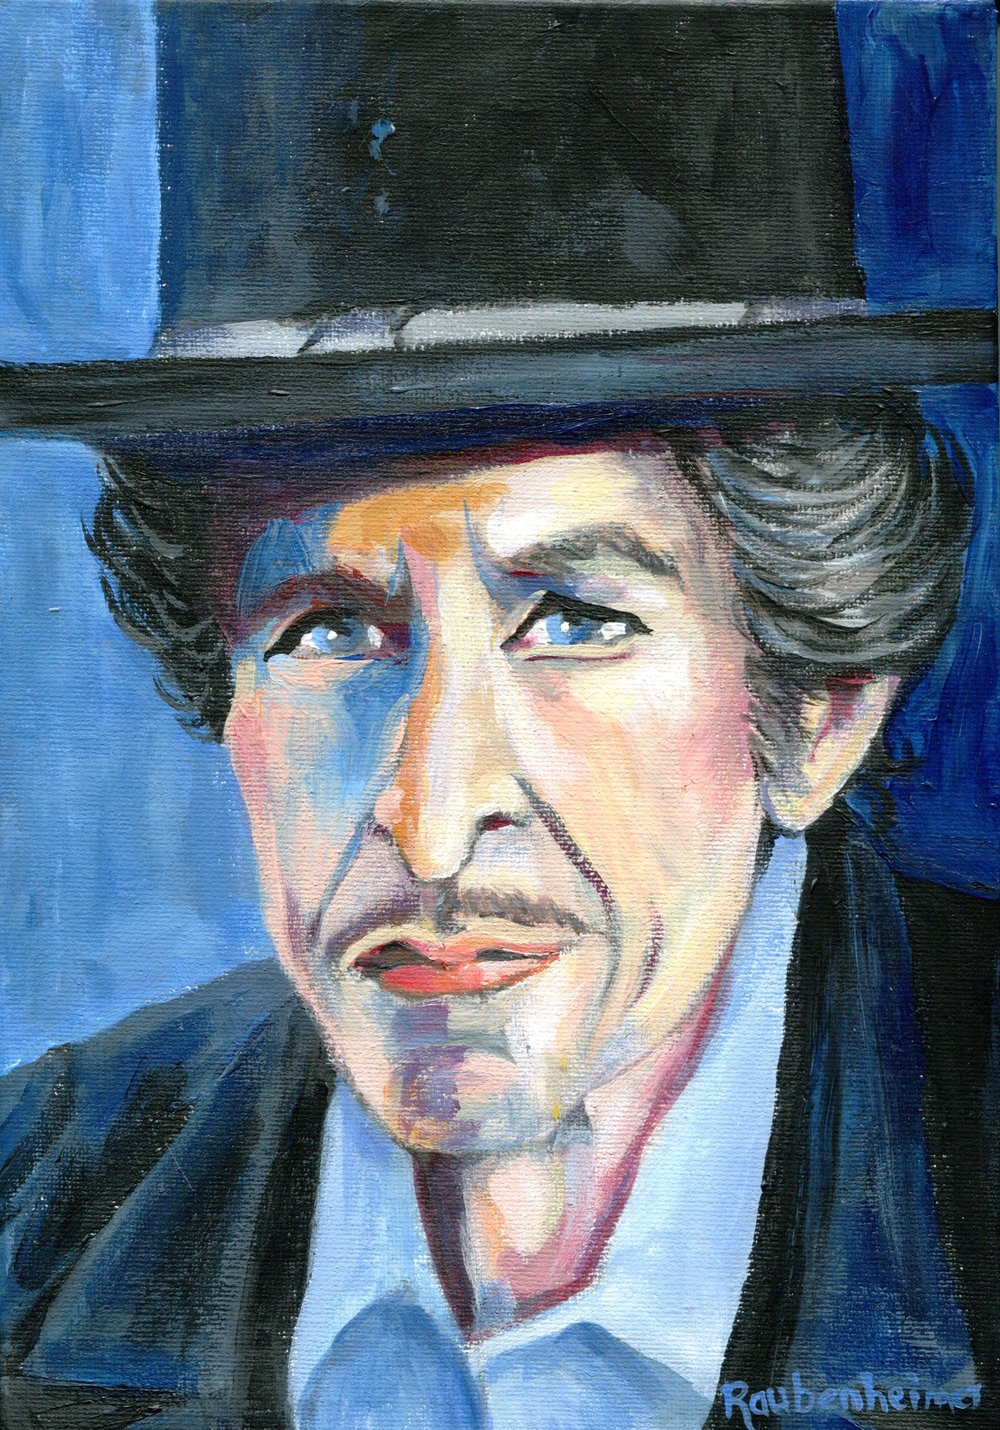 12C NARDI ANNE RAUBENHEIMER, DYLAN: POET LAUREATE, ACRYLIC ON CANVAS